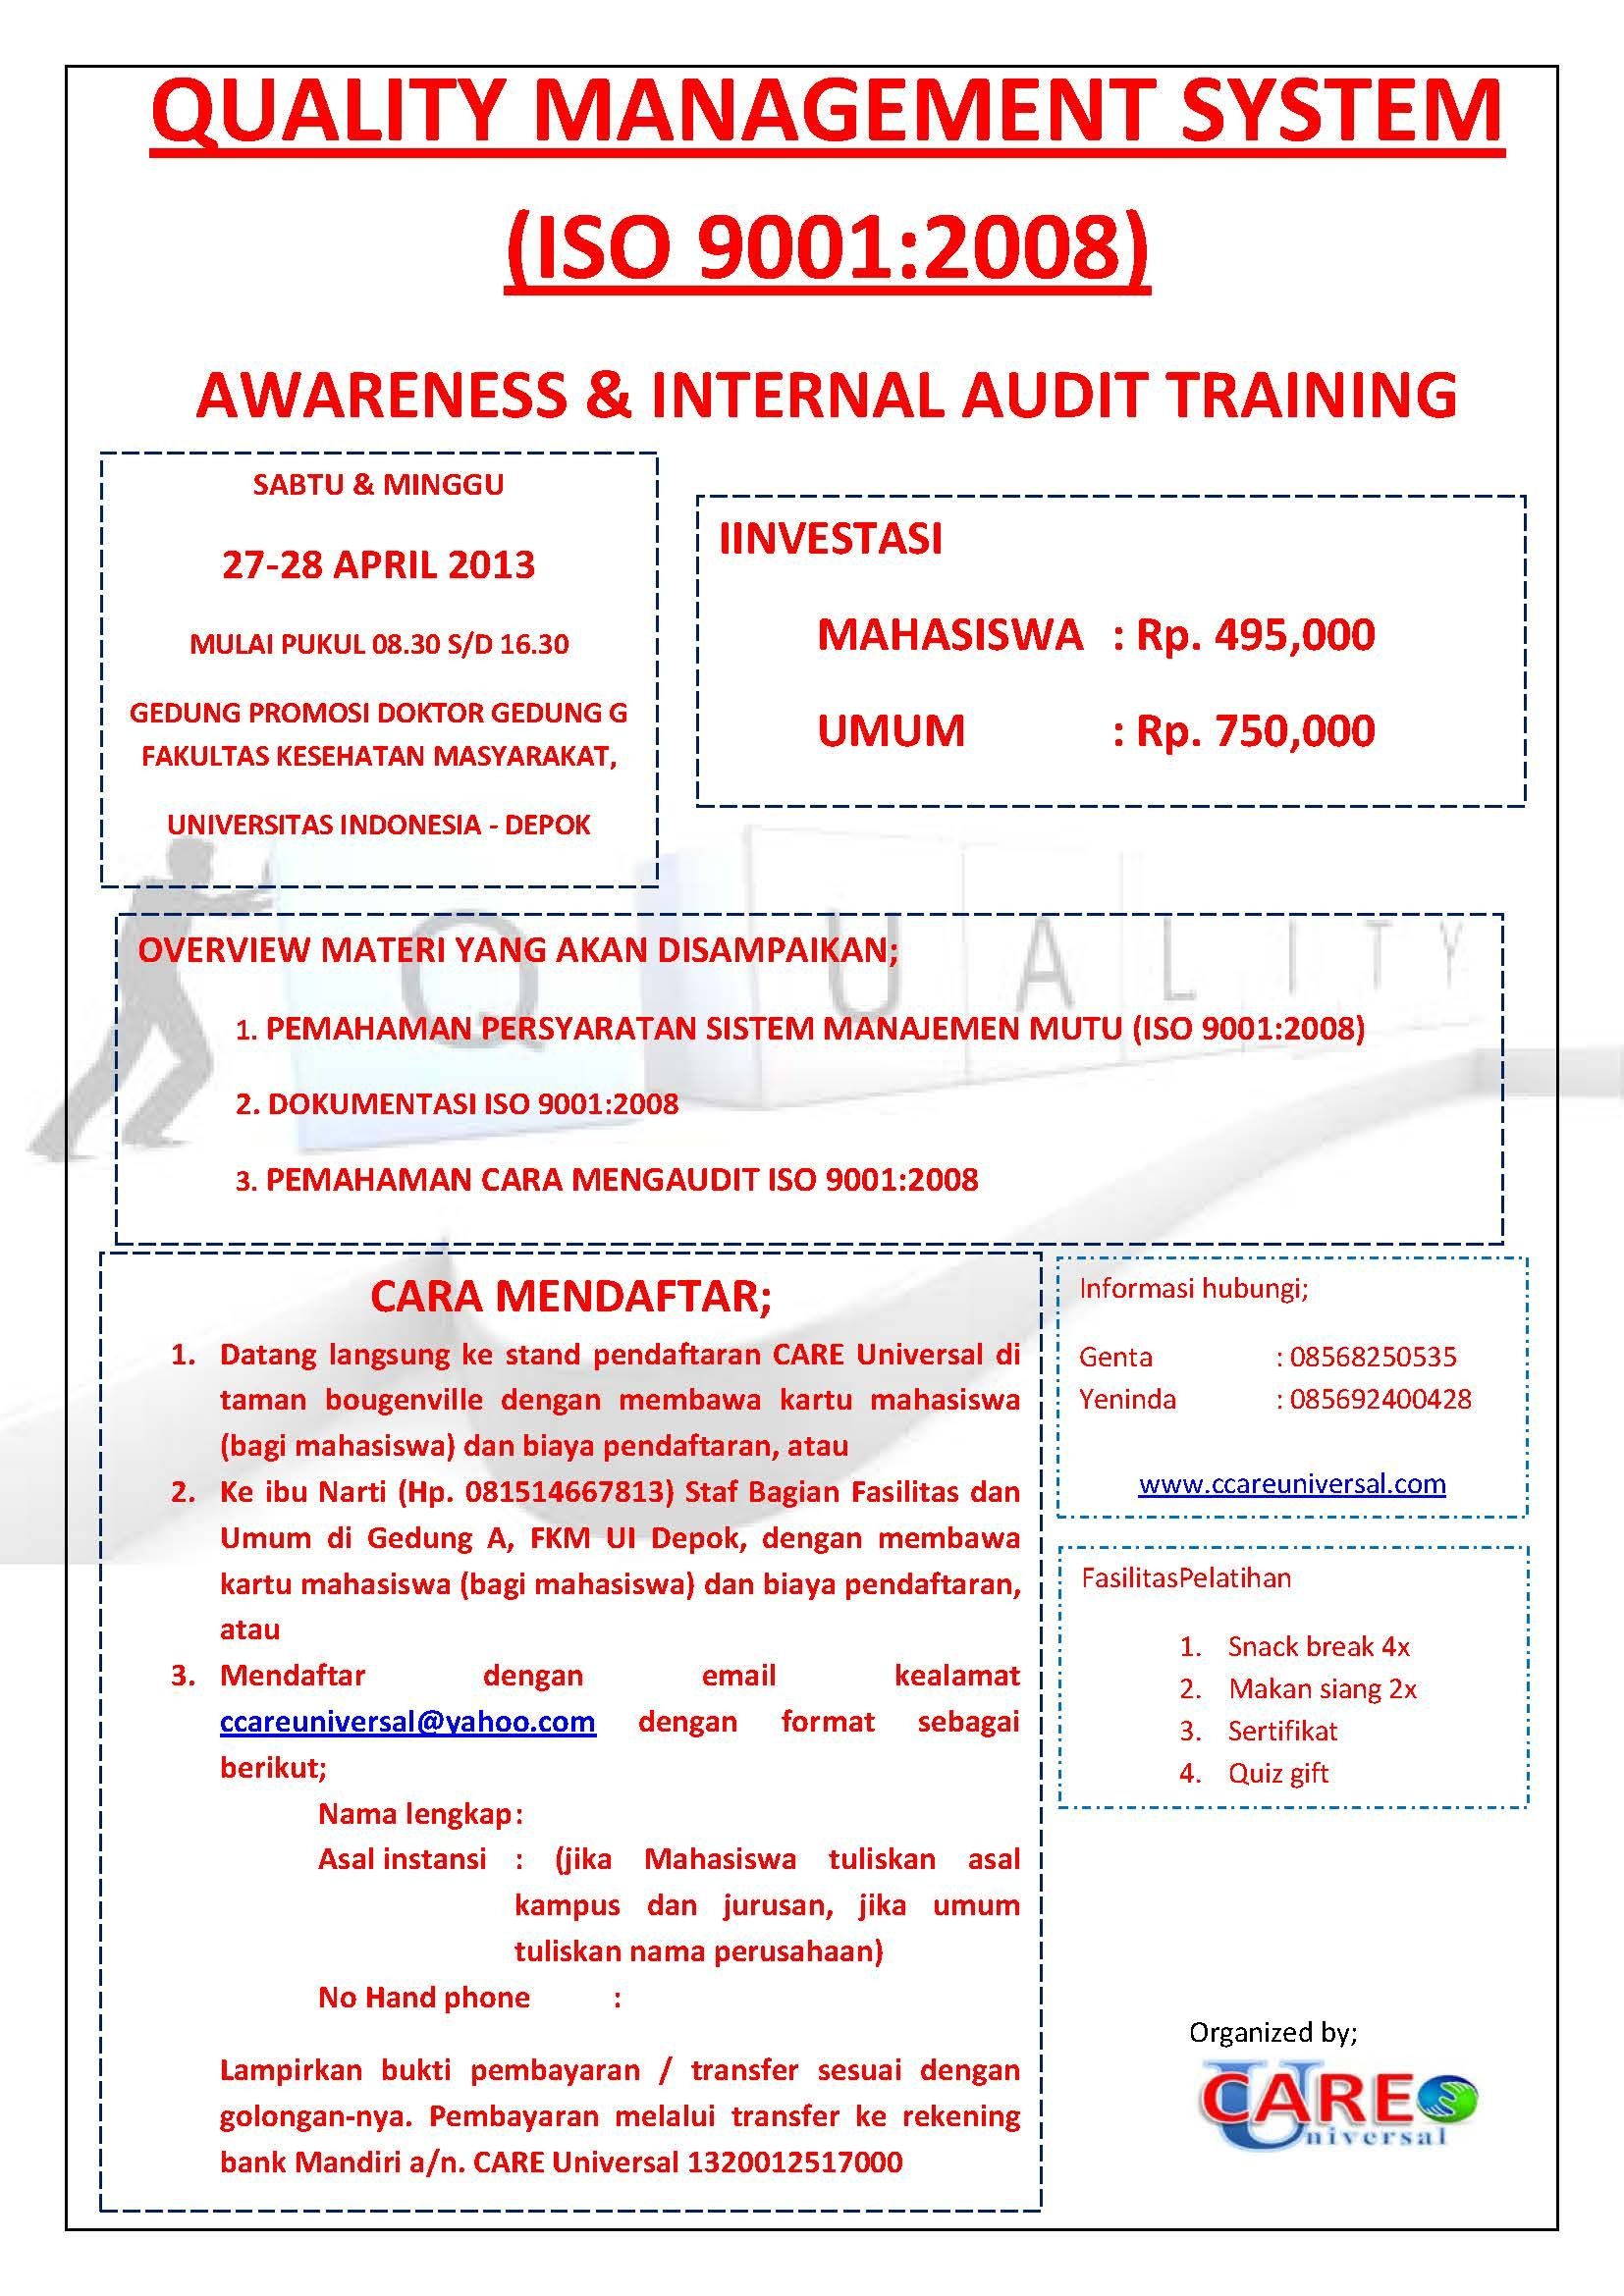 yuuk ikut training iso 9001 2008 dan internal audit